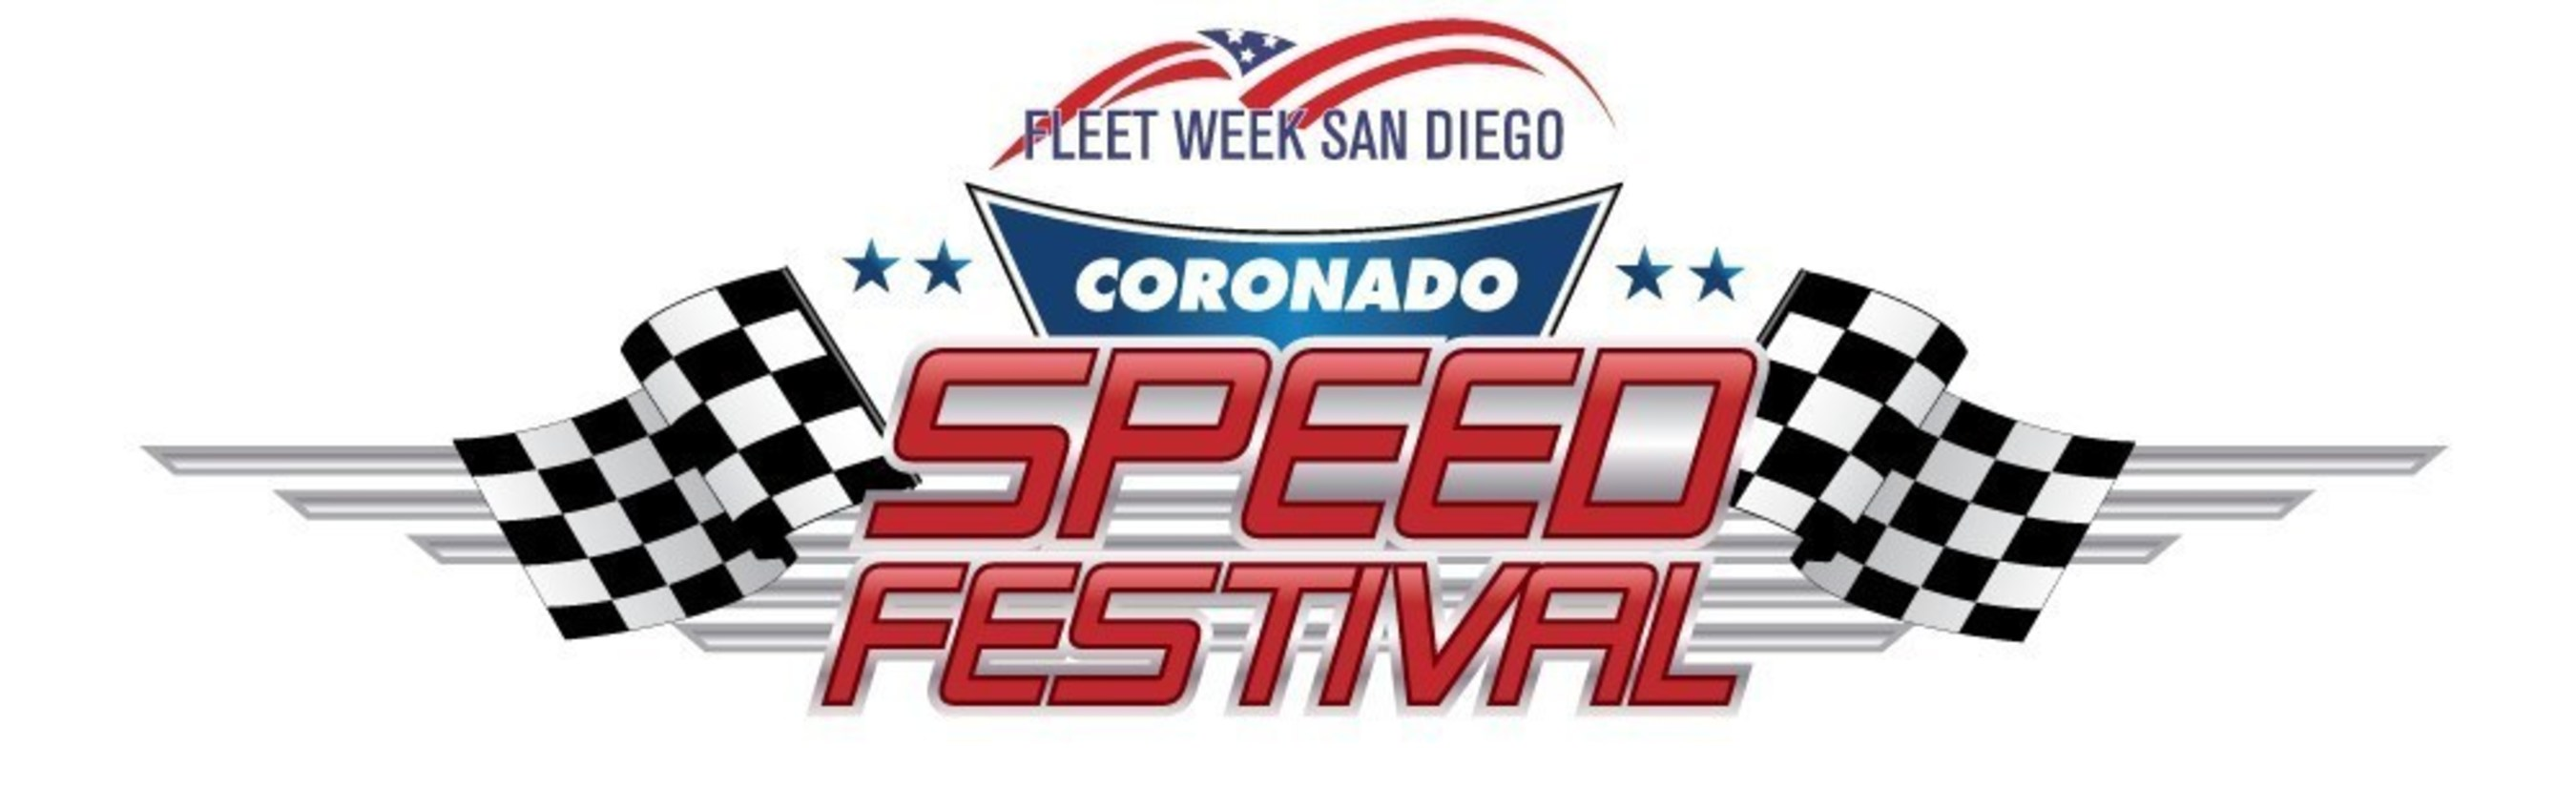 Tickets on Sale Now! Fleet Week Coronado Speed Festival 2016